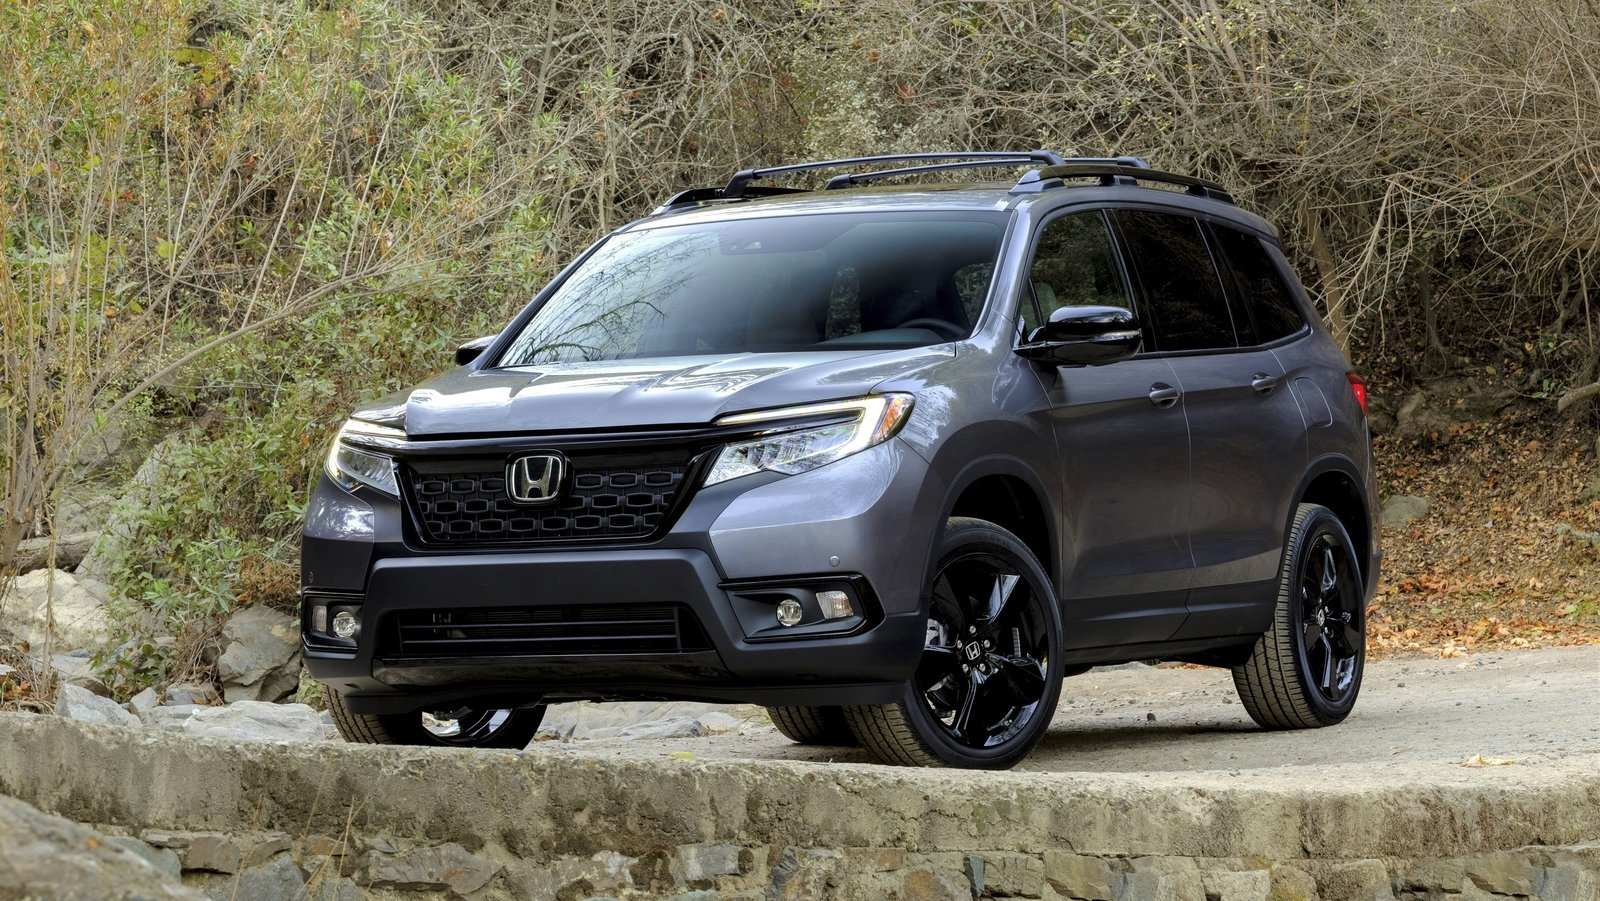 69 Great Honda Passport 2020 Ratings for Honda Passport 2020